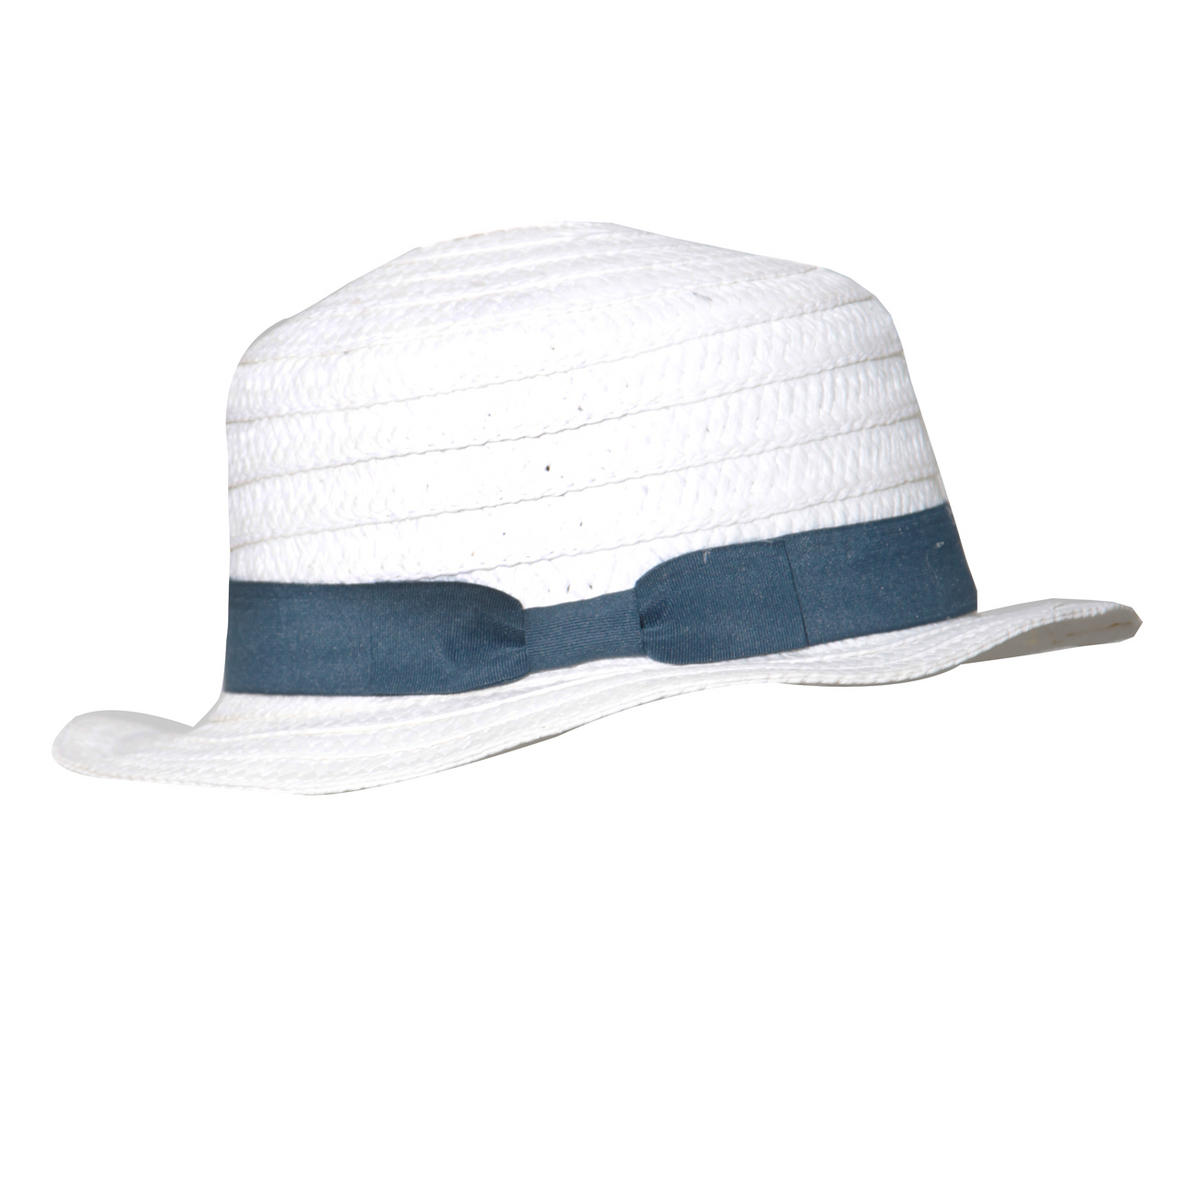 White Straw Boater Hat Preview